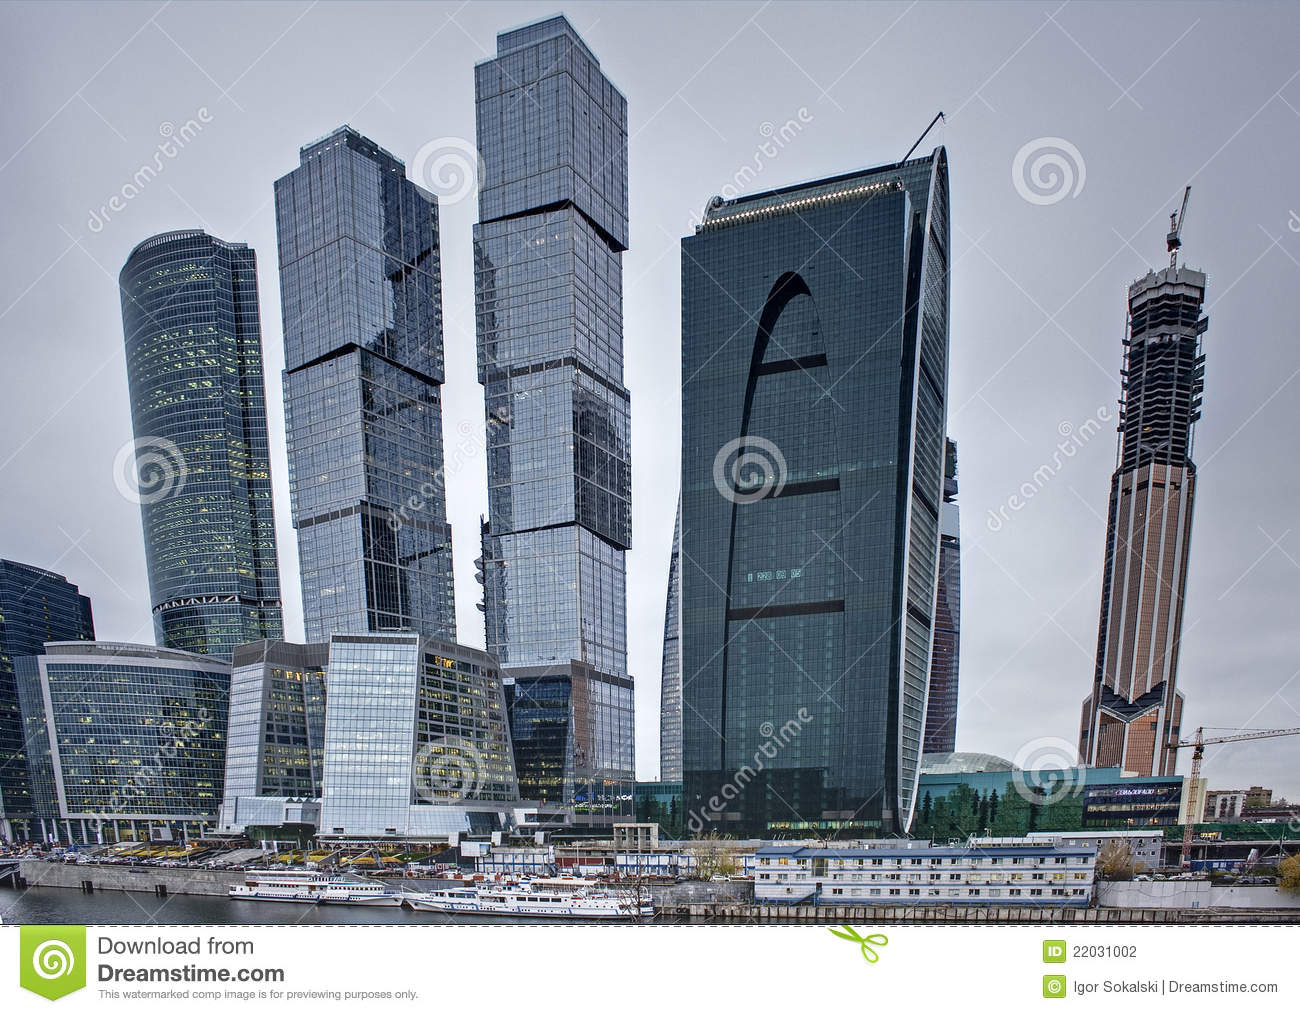 Modern Architecture Skyscrapers modern architecture concept: skyscrapers stock photography - image